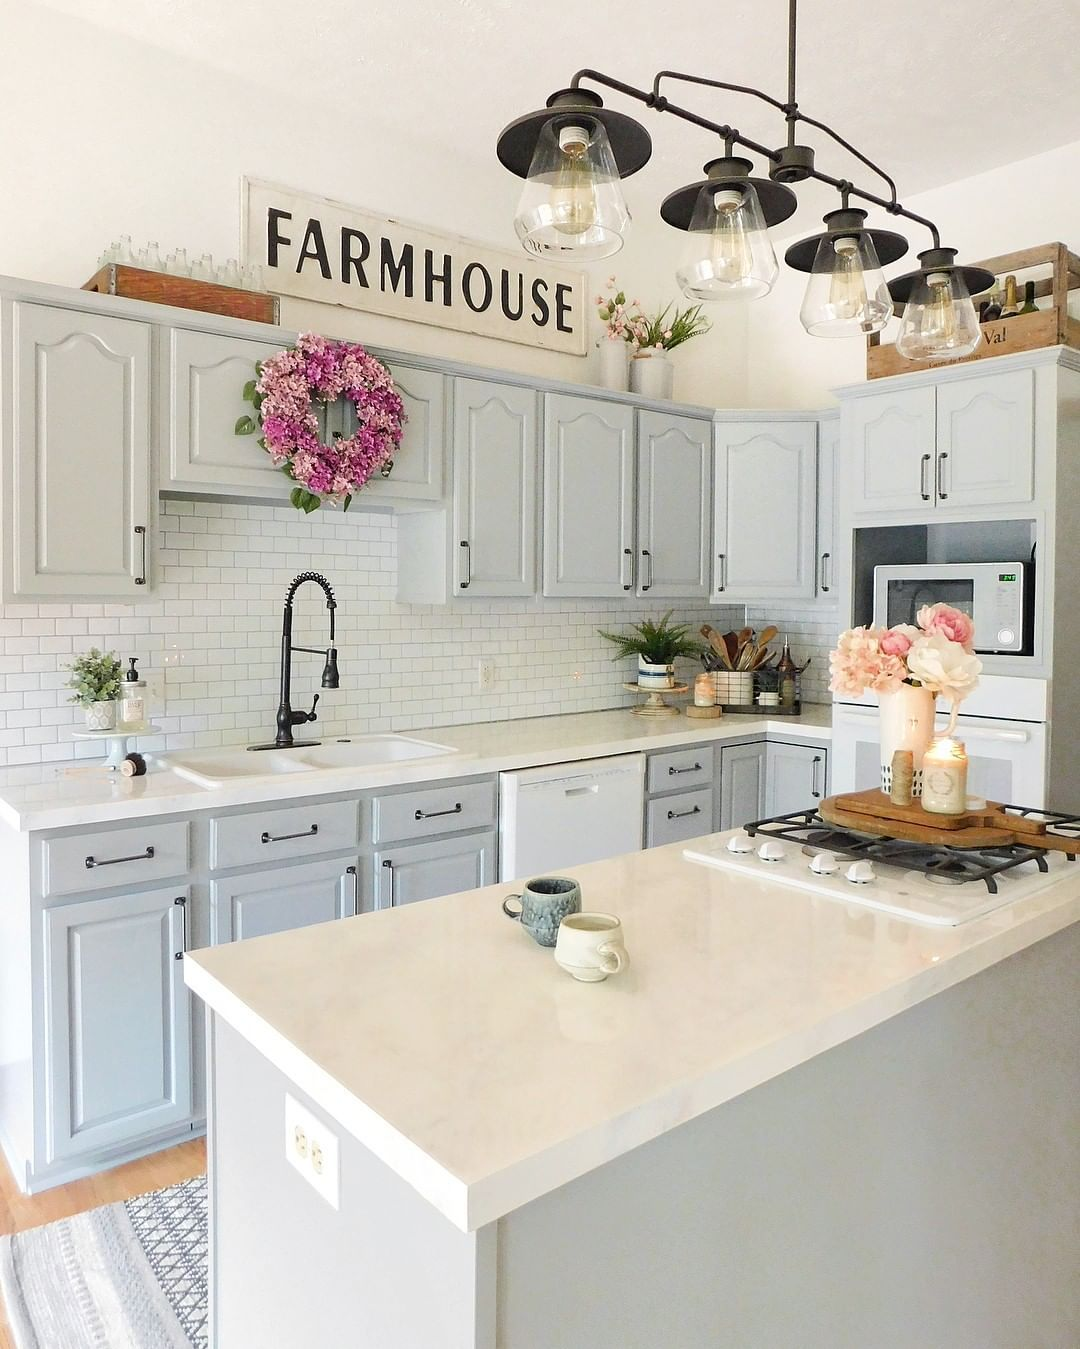 """DECORSTEALS.COM on Instagram: """"Who says your kitchen has to be traditional all-white? We are loving the light gray cabinets of @the.sycamore.farmhouse kitchen!"""